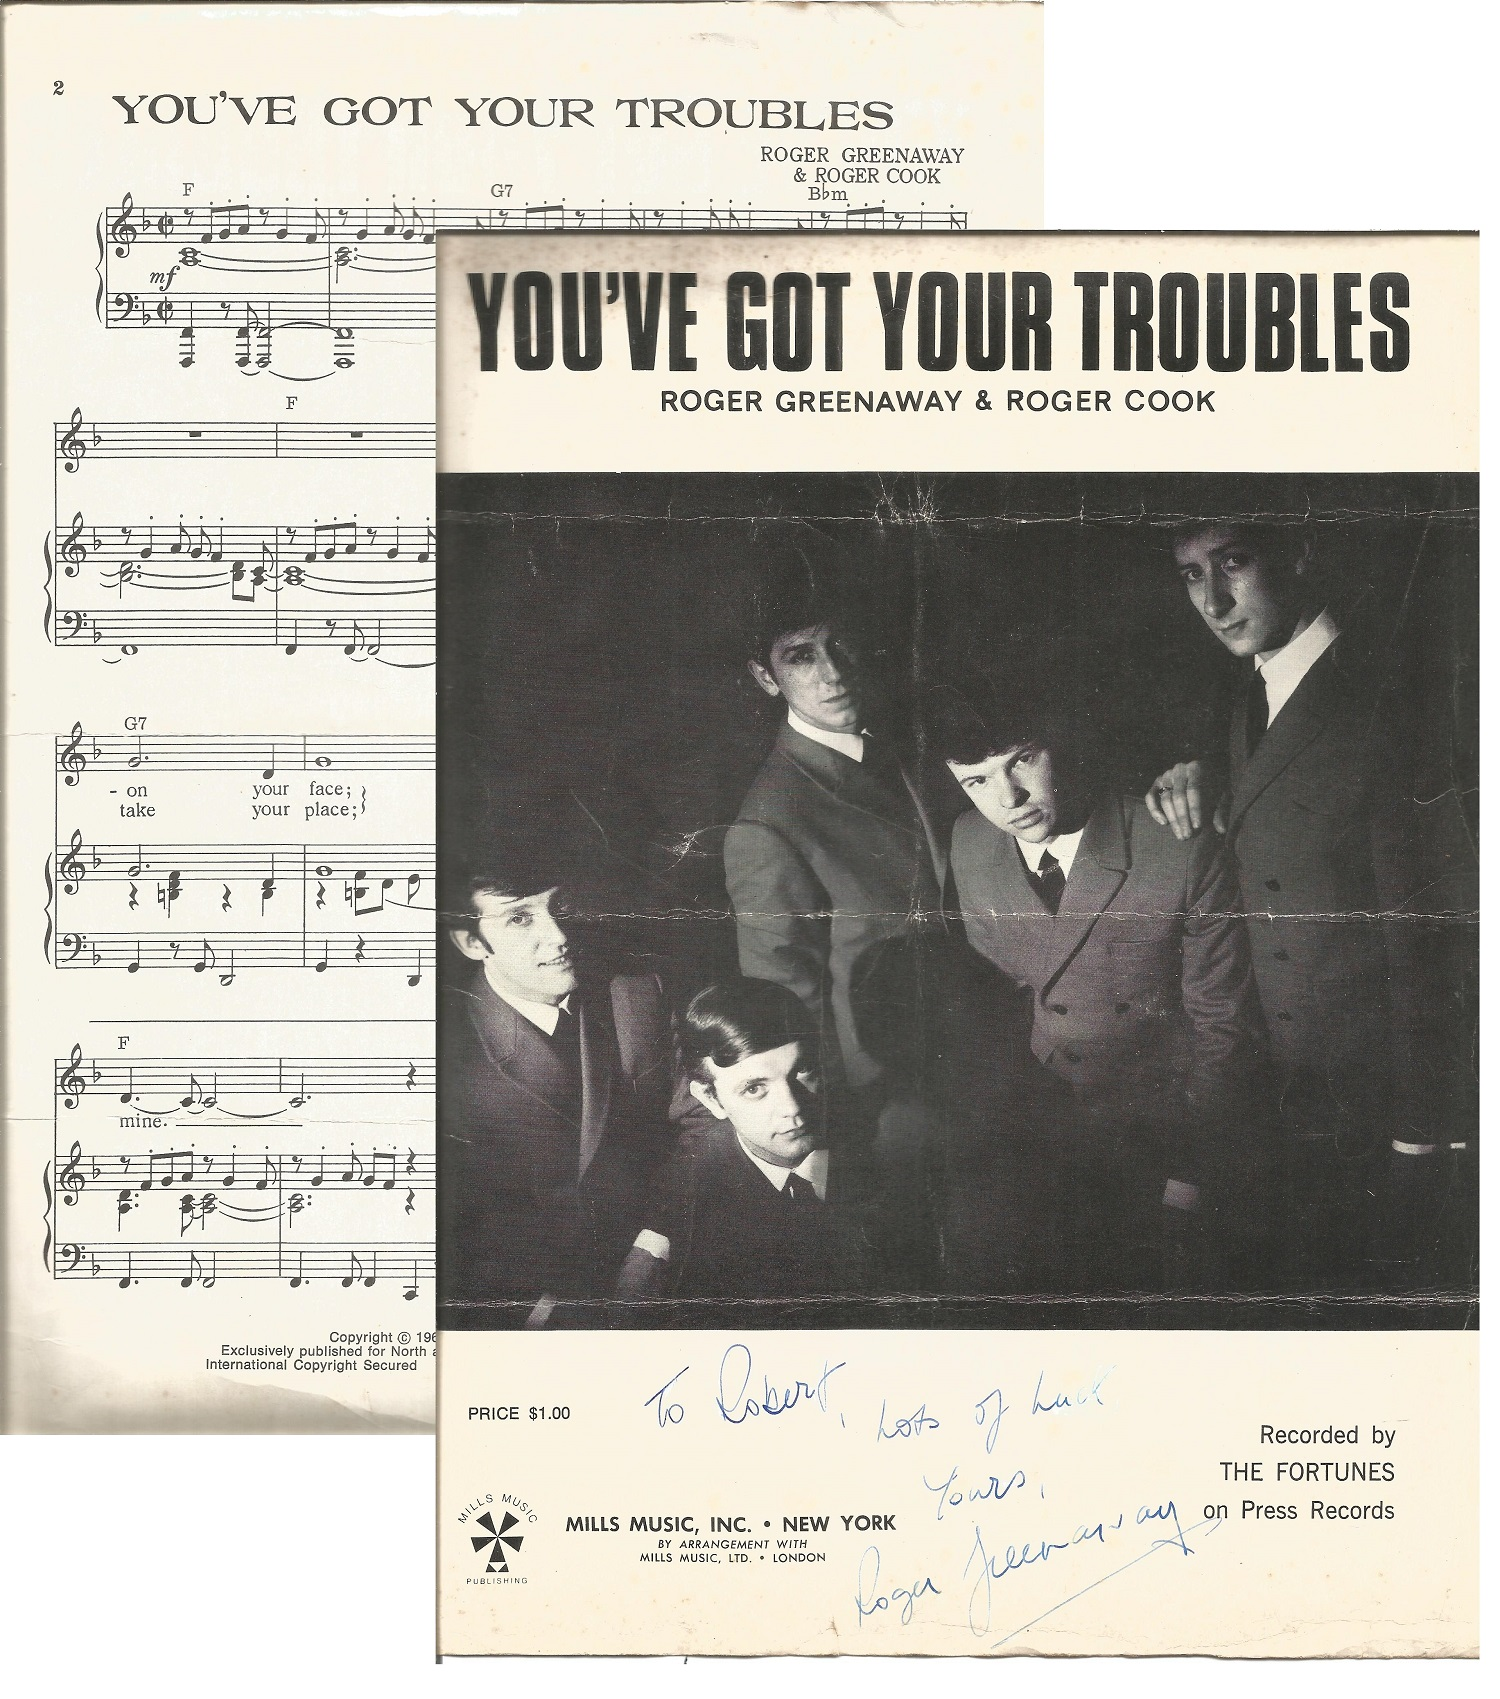 Roger Greenaway signed You've Got Your Troubles 12 x 9 song sheet. Features black & white photo of